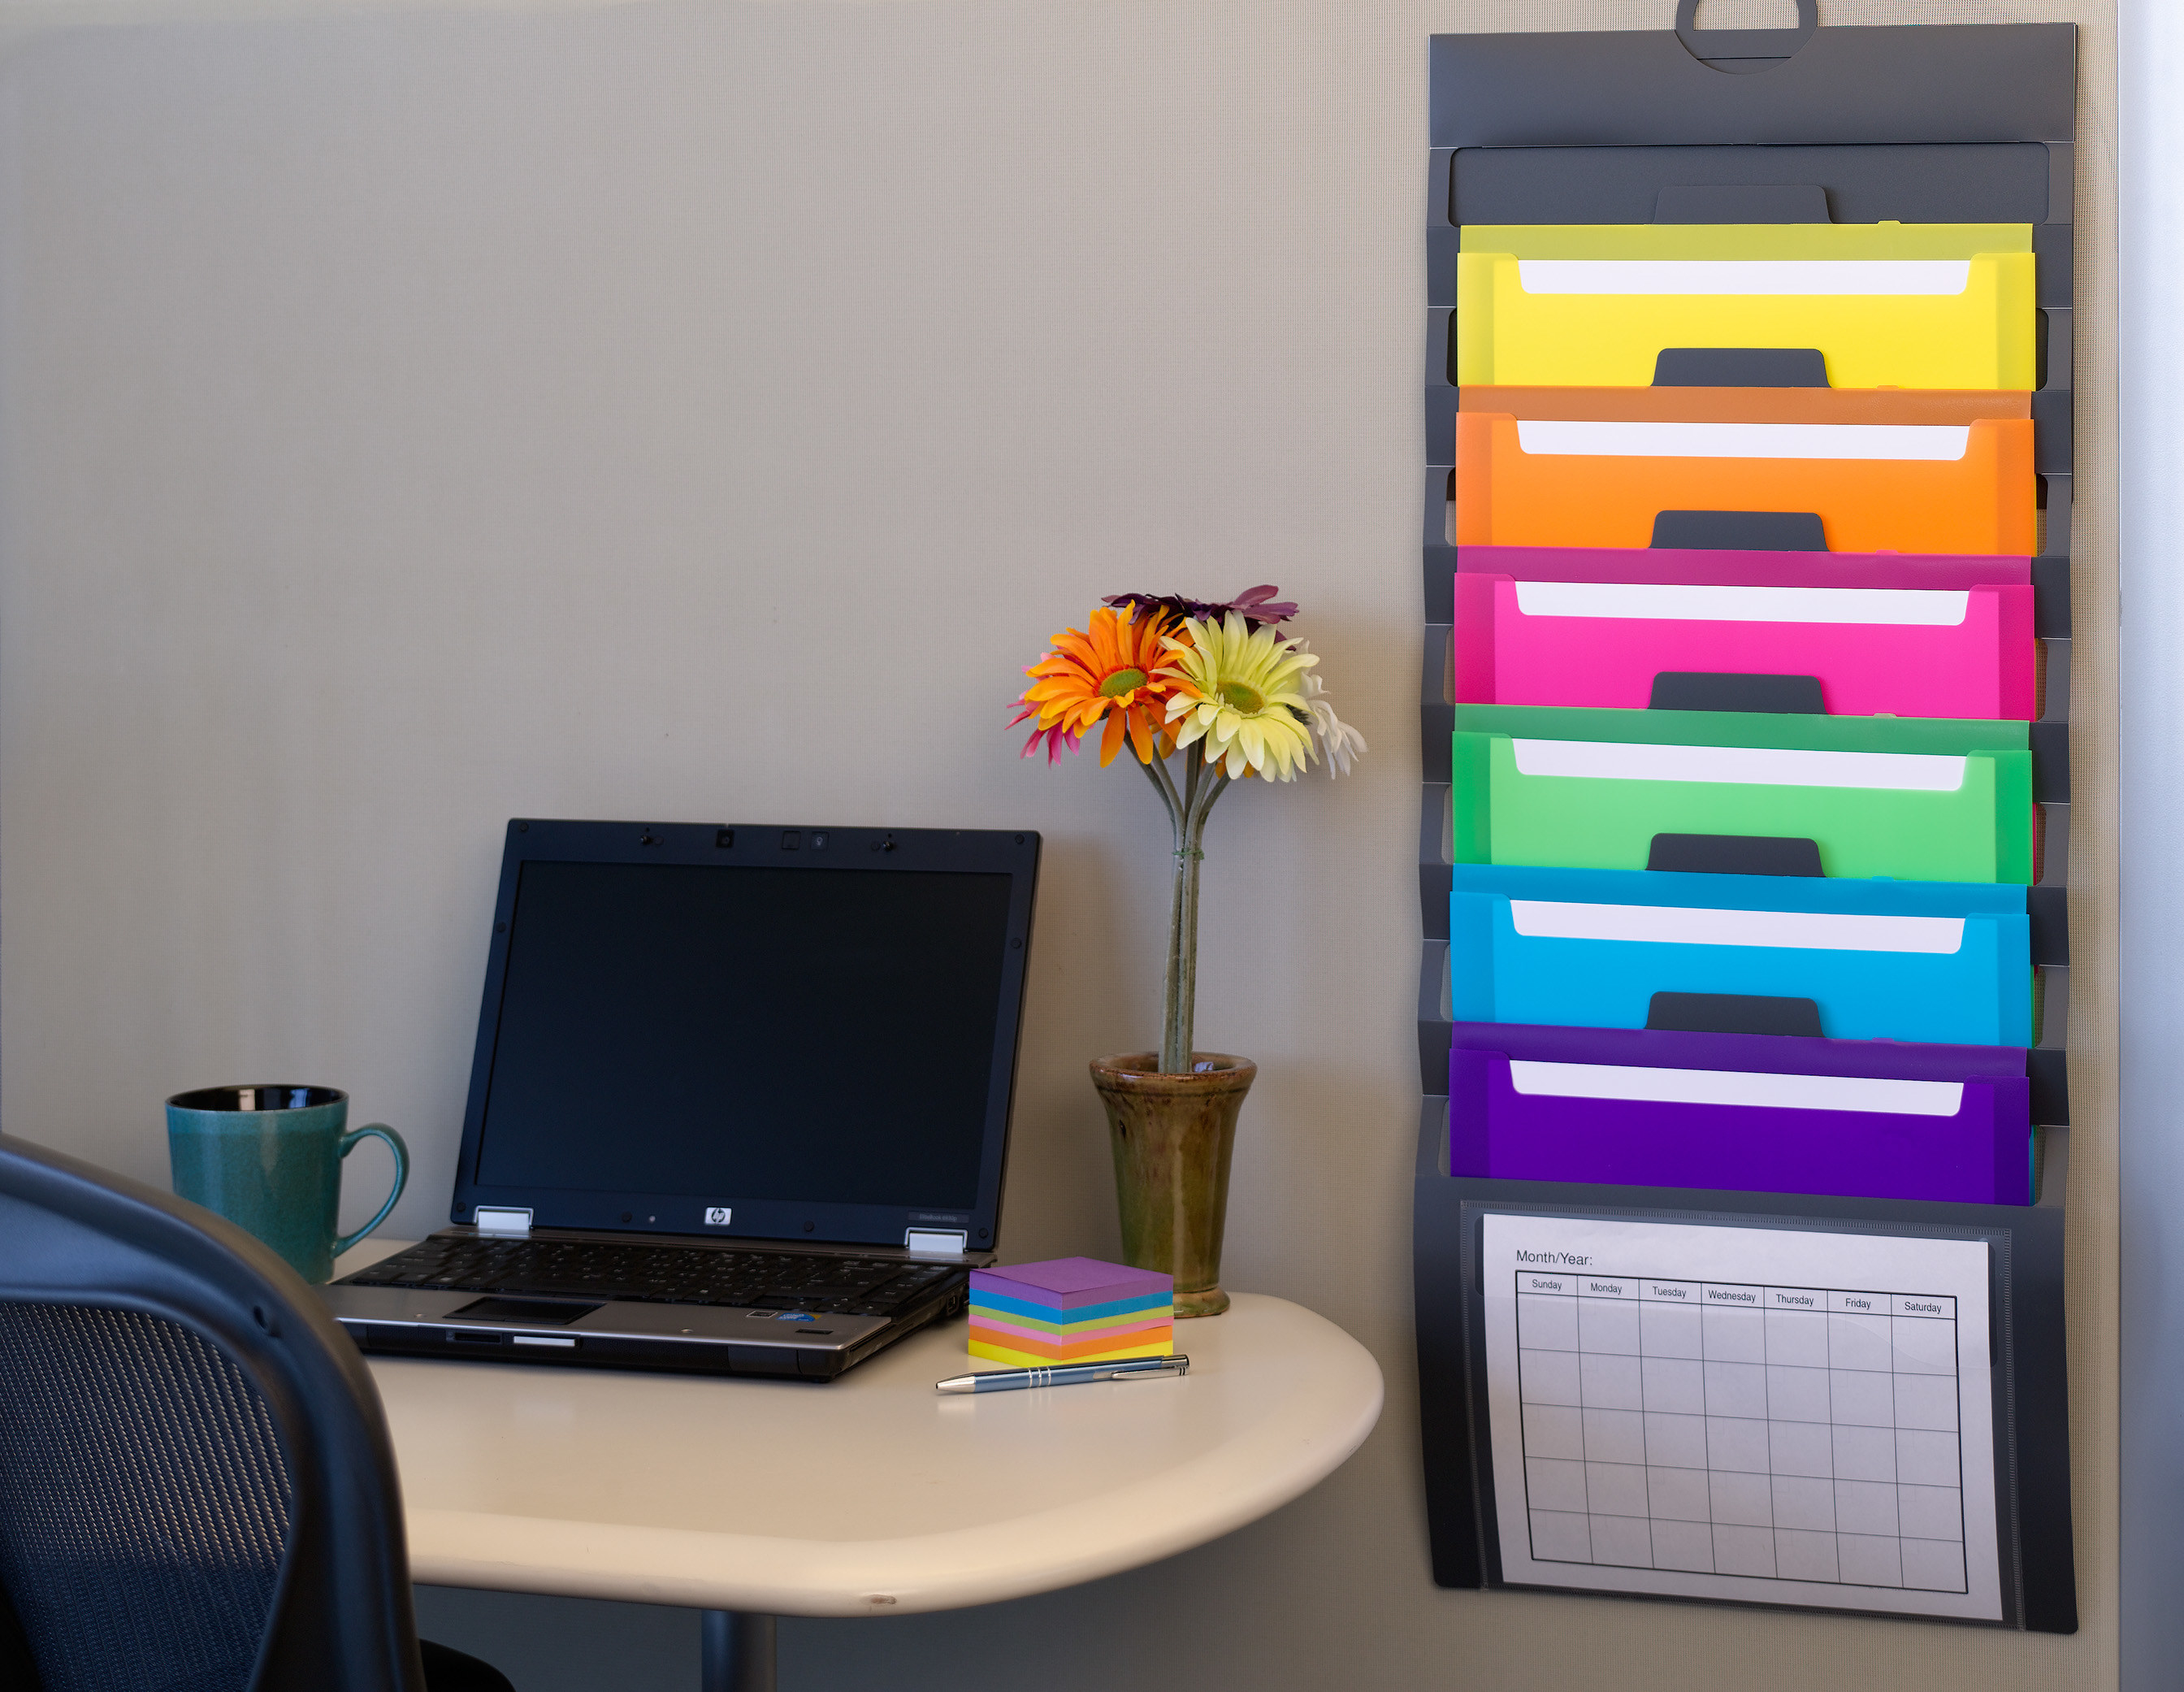 the hanging wall organizer with multicolor folders